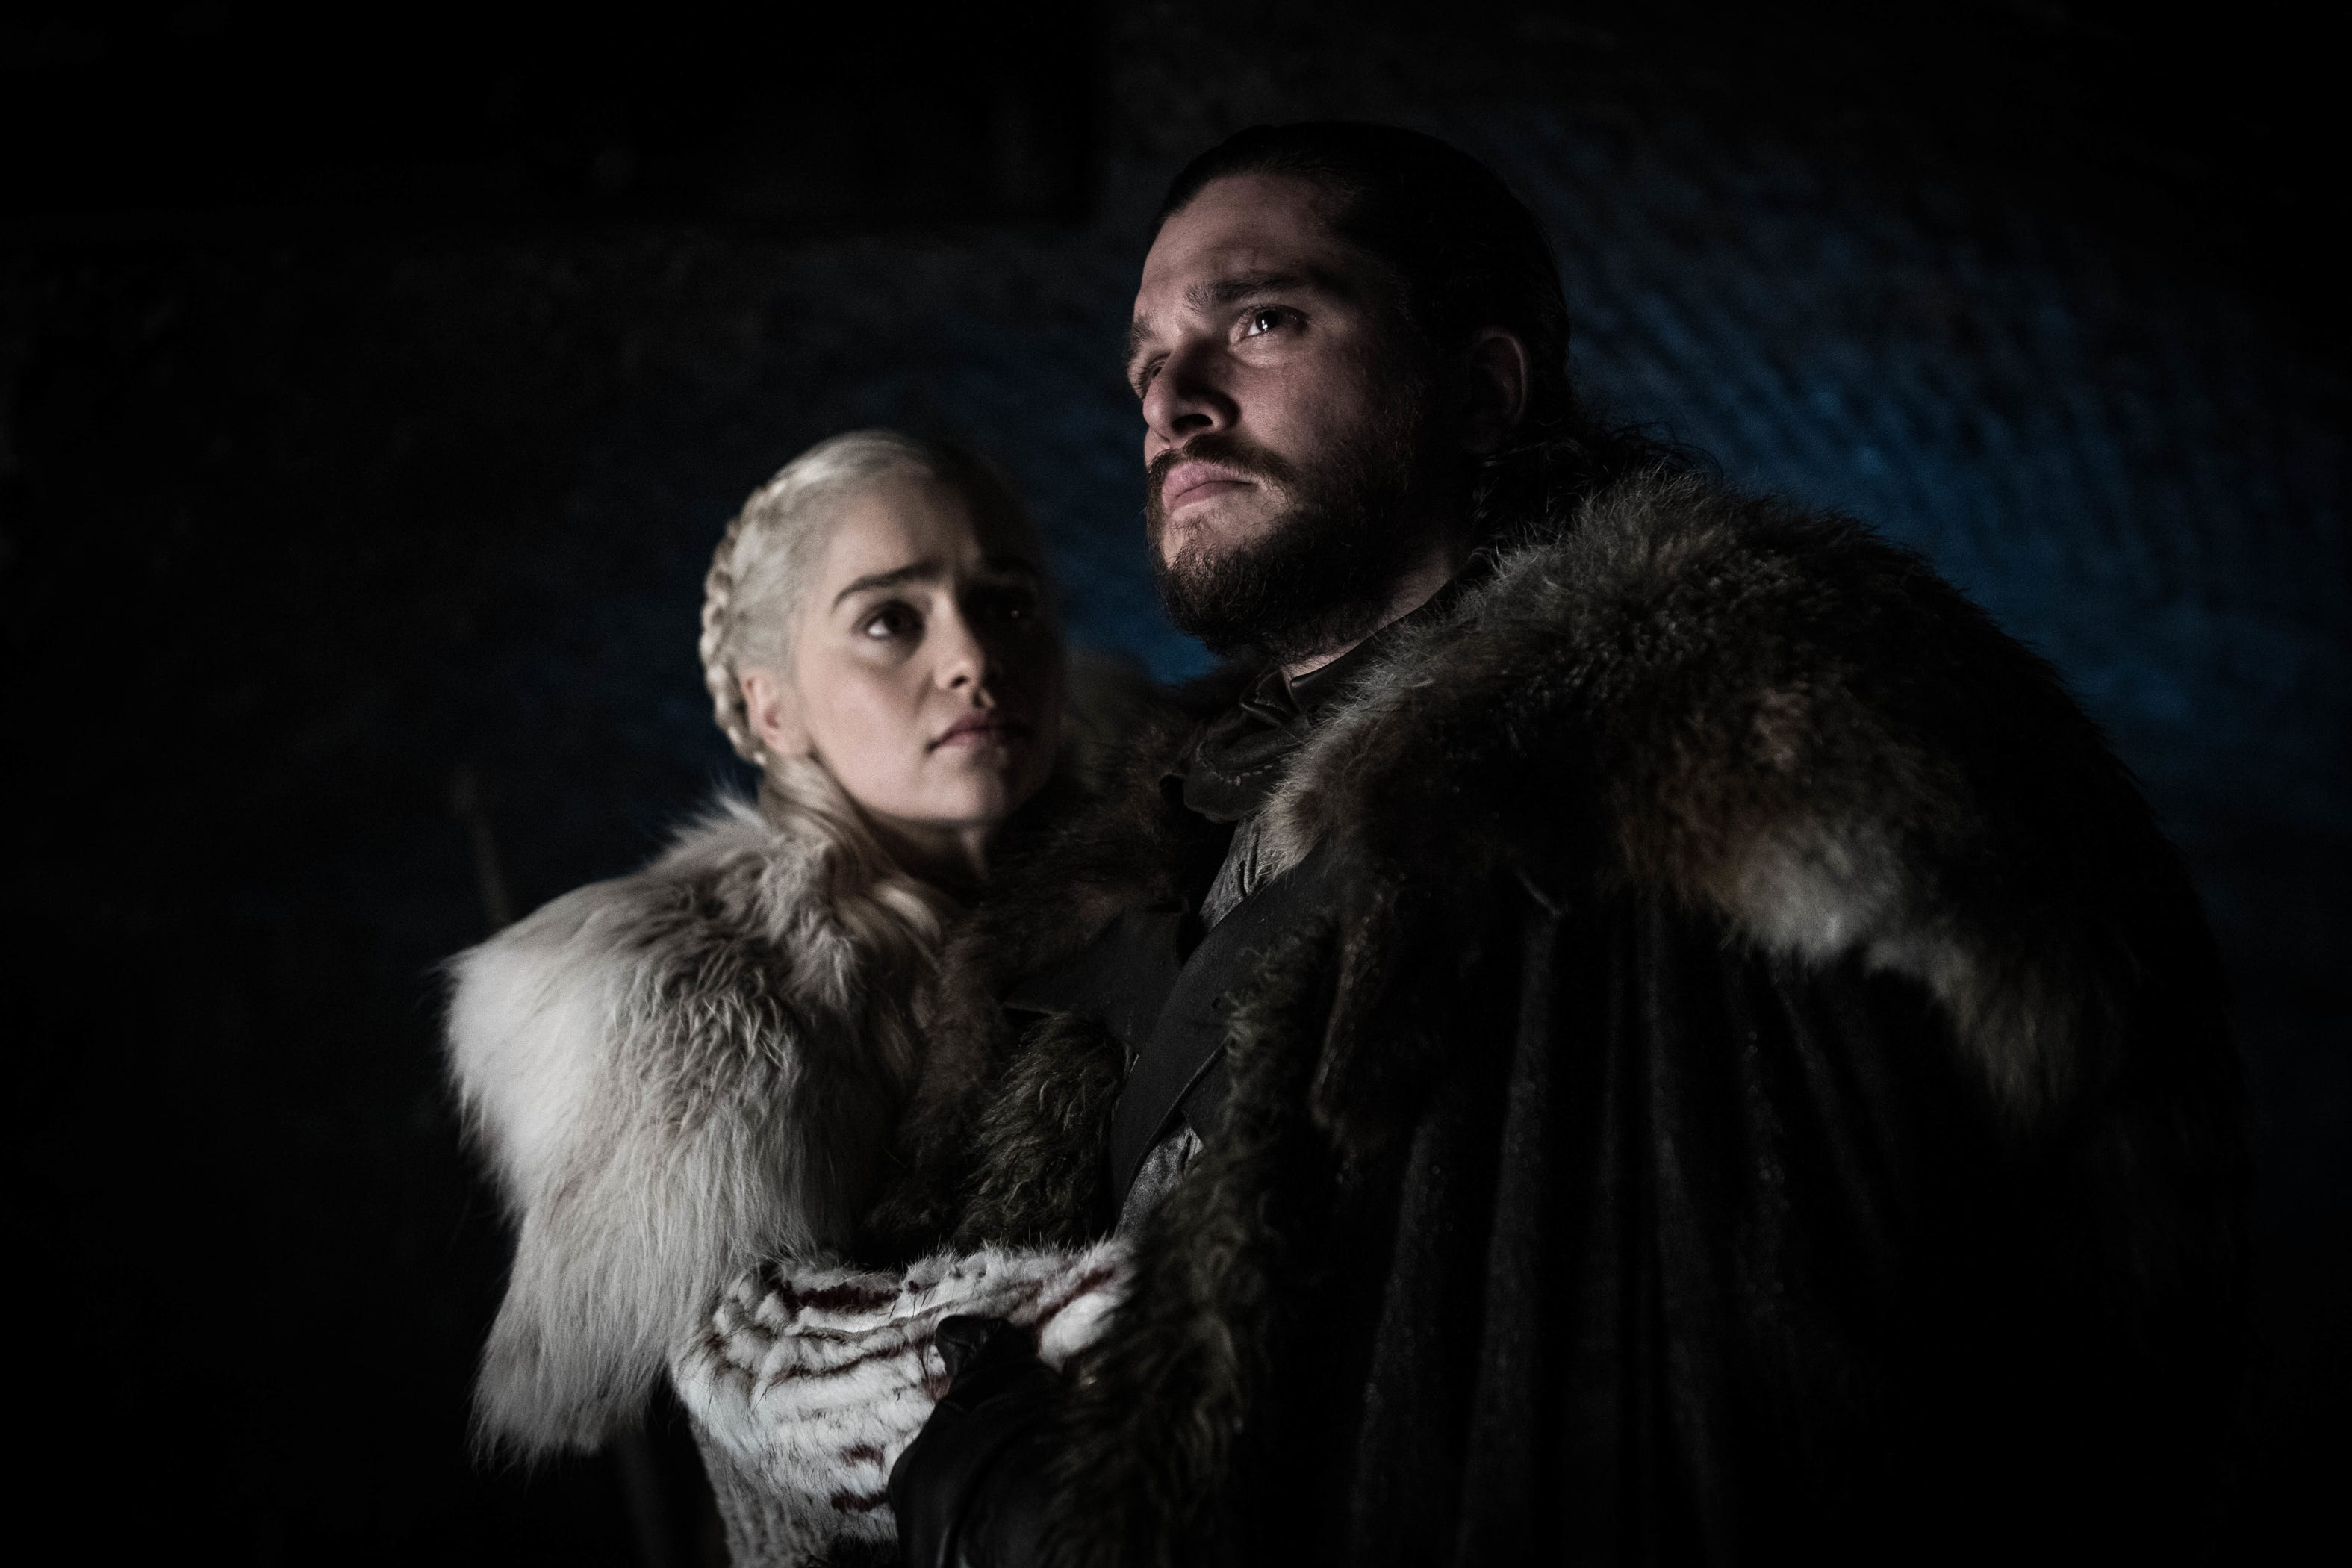 -aposgame-of-thrones-apos-recap-a-masterful-episode-shows-the-calm-before-the-(undead)-storm